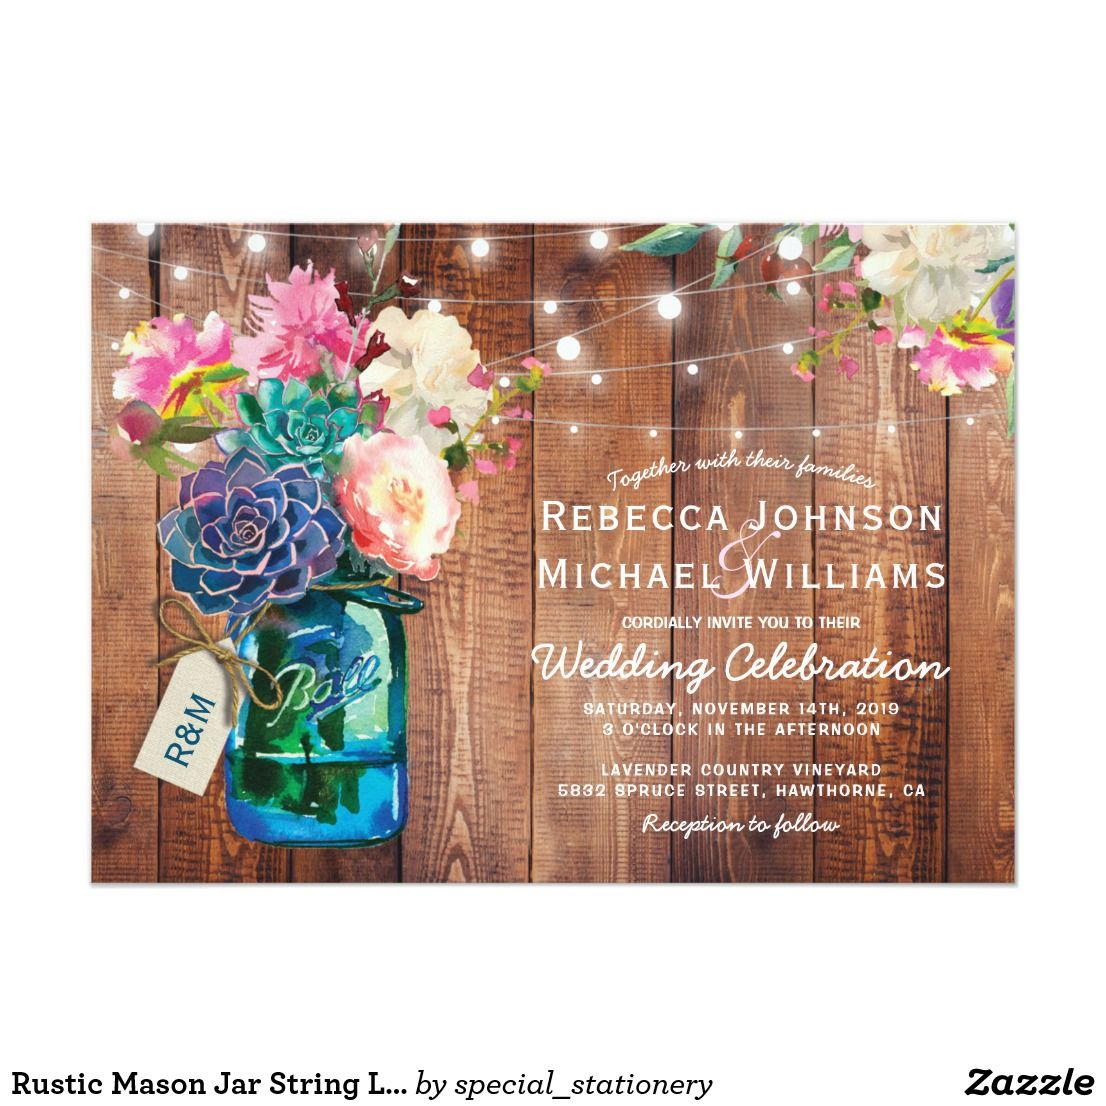 Rustic Mason Jar String Lights Floral Wedding Card Country Invitations Featuring A Wooden Background With Display In